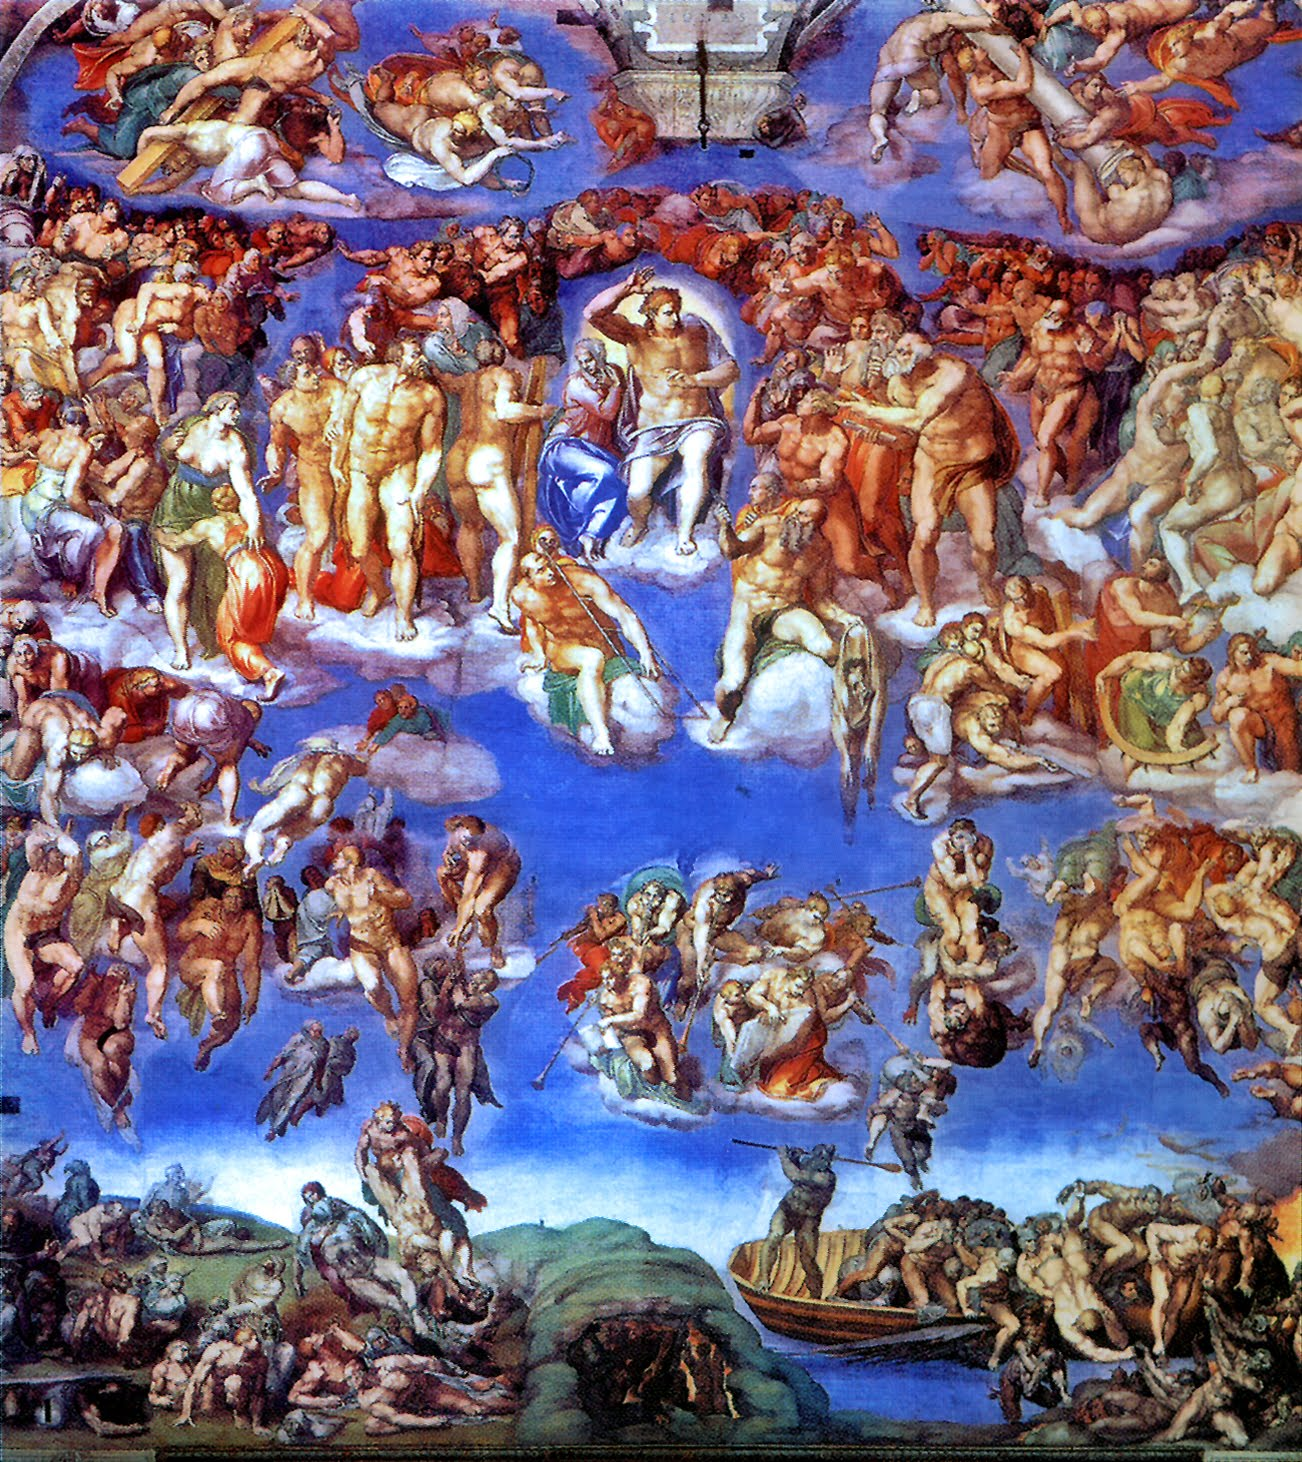 michelangelo and his famous work of art the last judgement The artist later enjoyed more convivial partnerships with other pontiffs, and found a famous champion in pope paul iii, who defended his work the last judgment after church officials deemed.